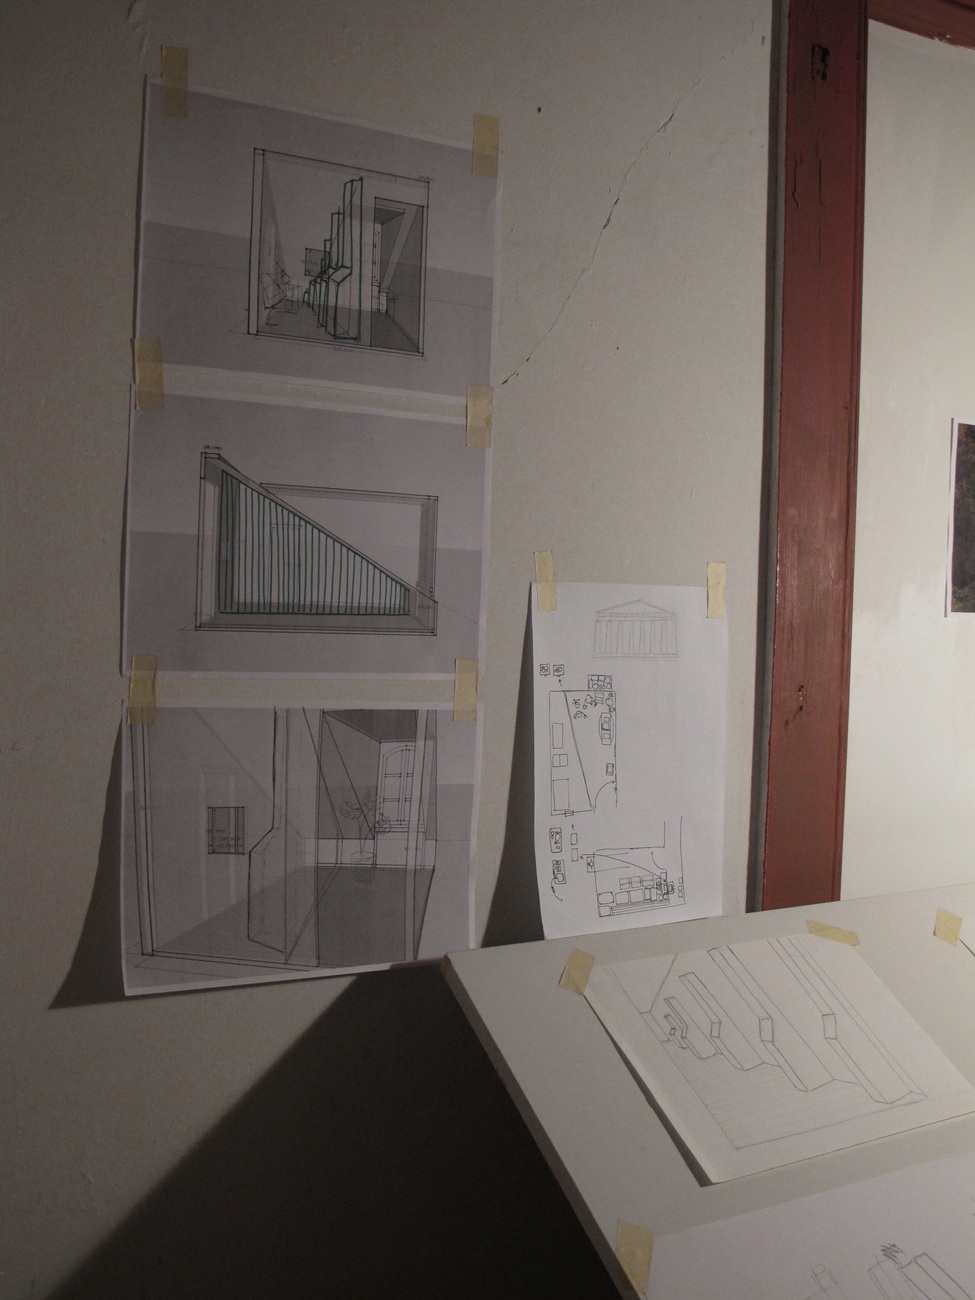 drawings on wall of interior space